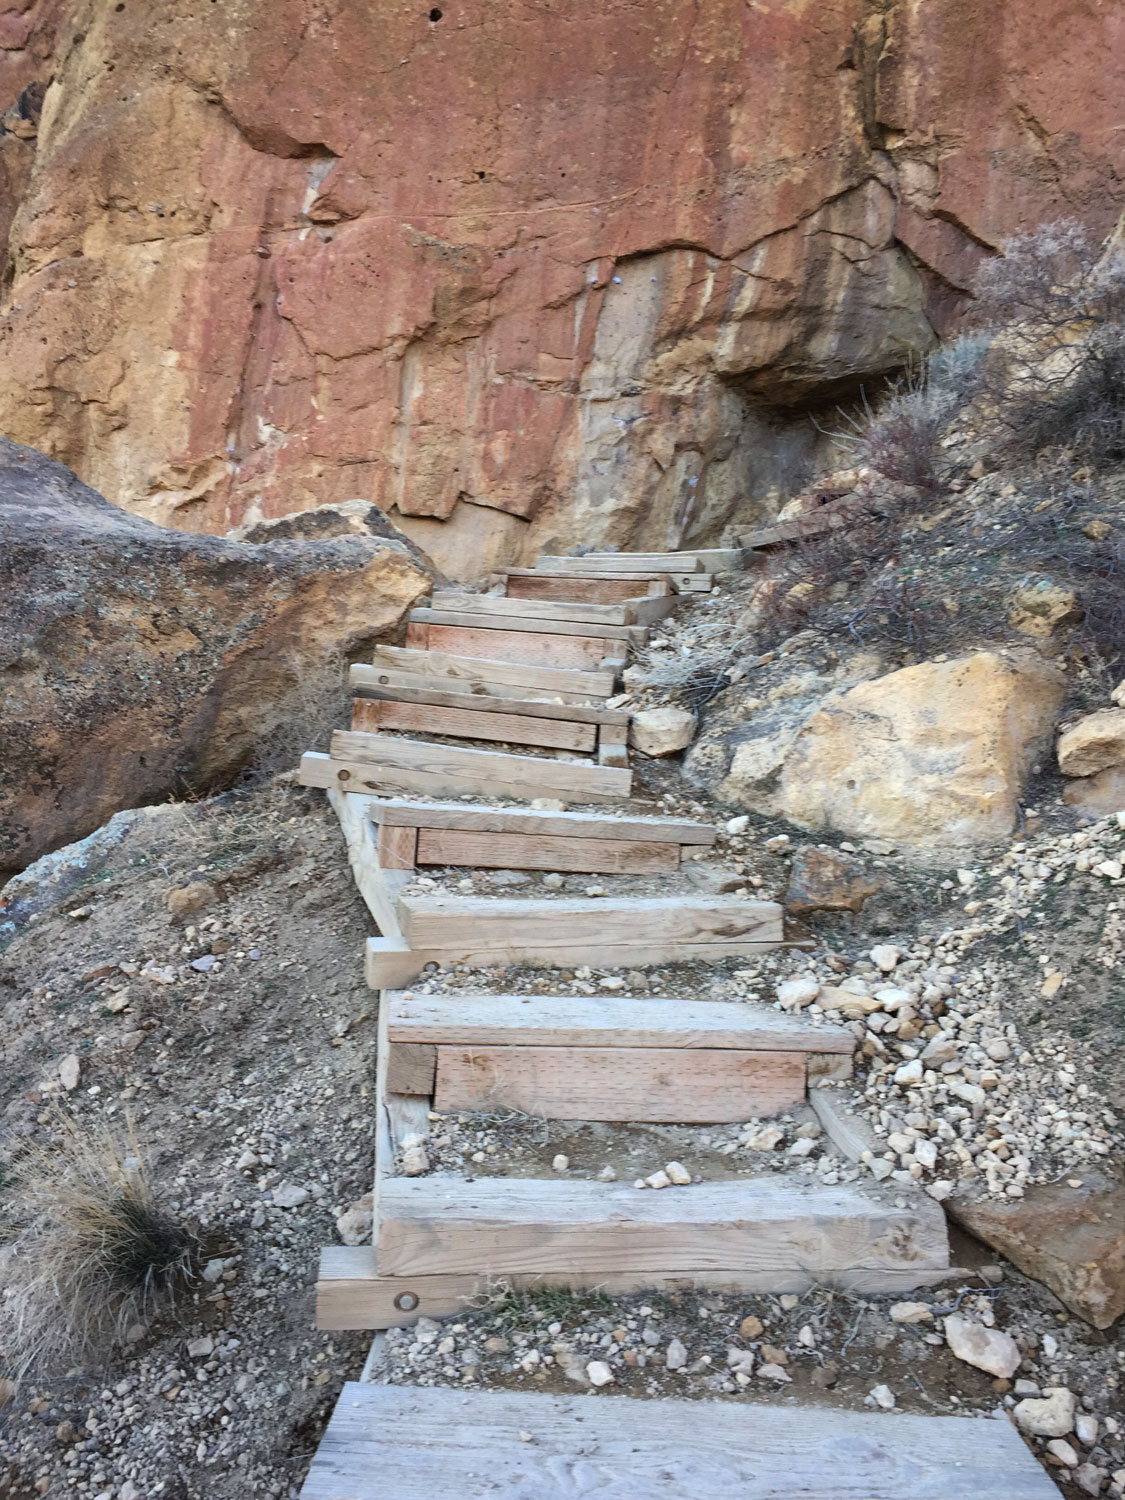 Stairs interspersed with scree on the Misery Ridge Trail help to prevent further erosion at Smith Rock State Park.